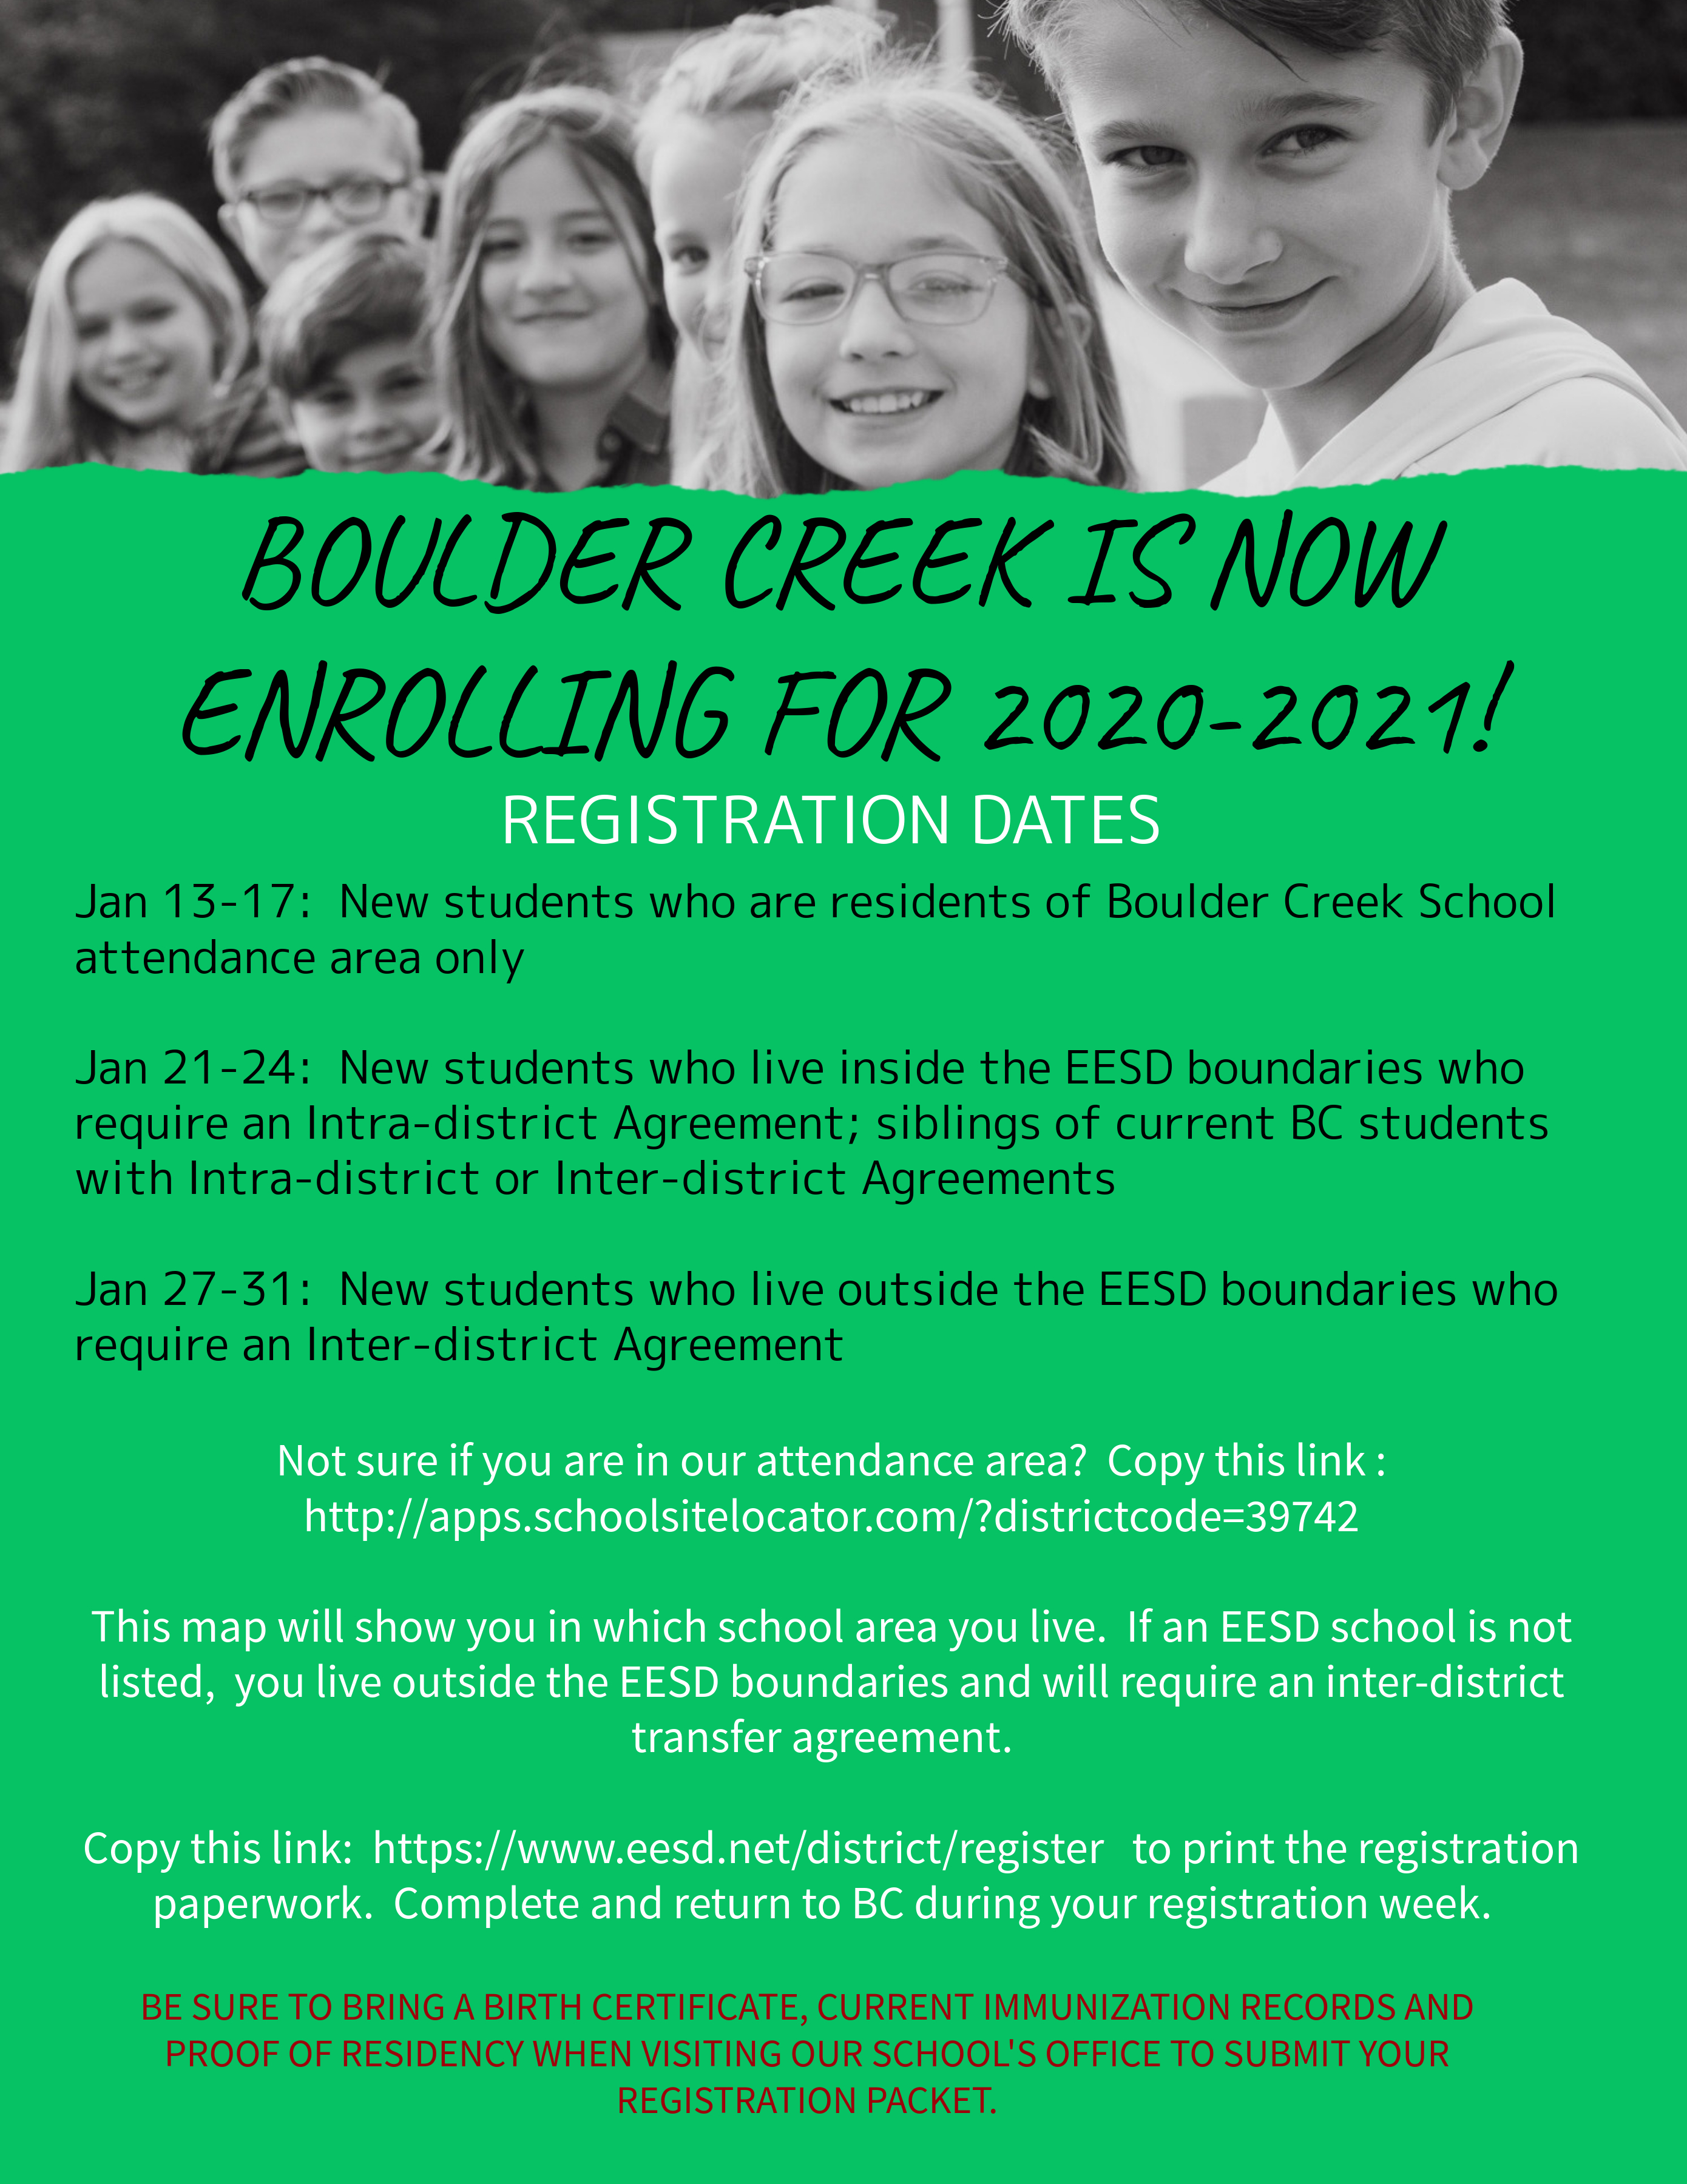 Boulder Creek 2020-2021 Enrollment is Open!